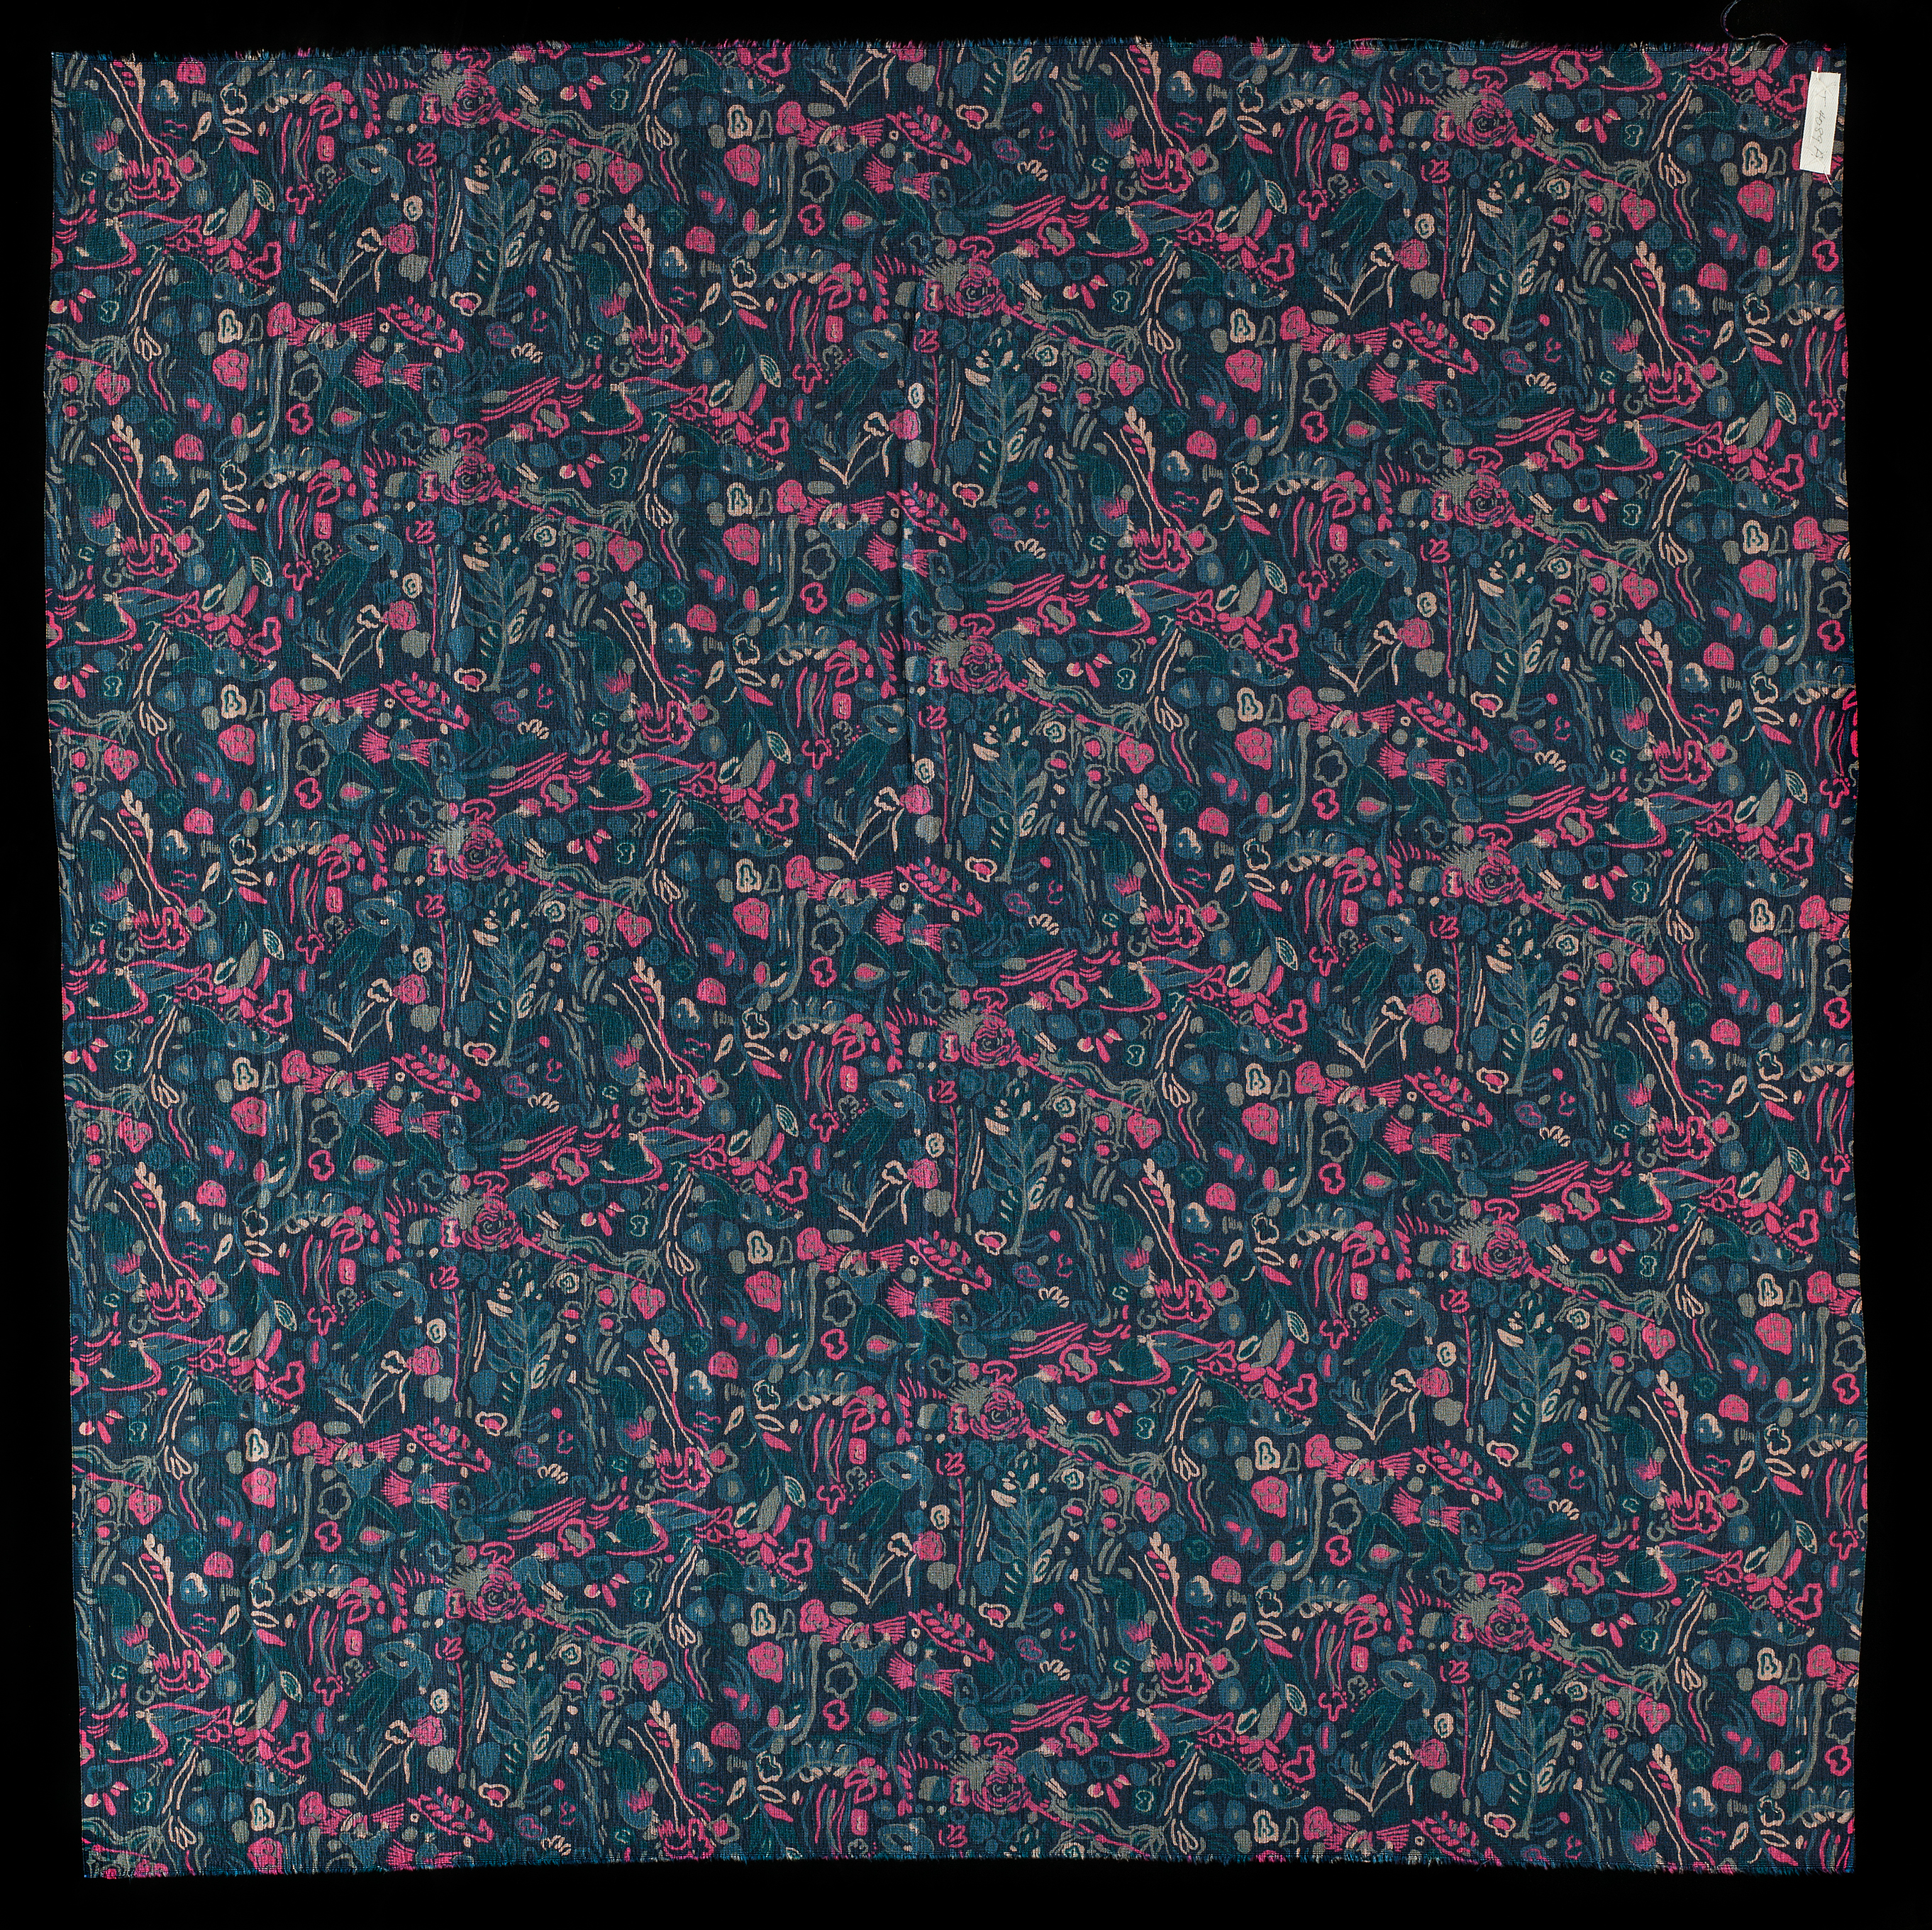 Photo of fabric. Navy blue background with small figures in lighter blue a6113f8c9b62d